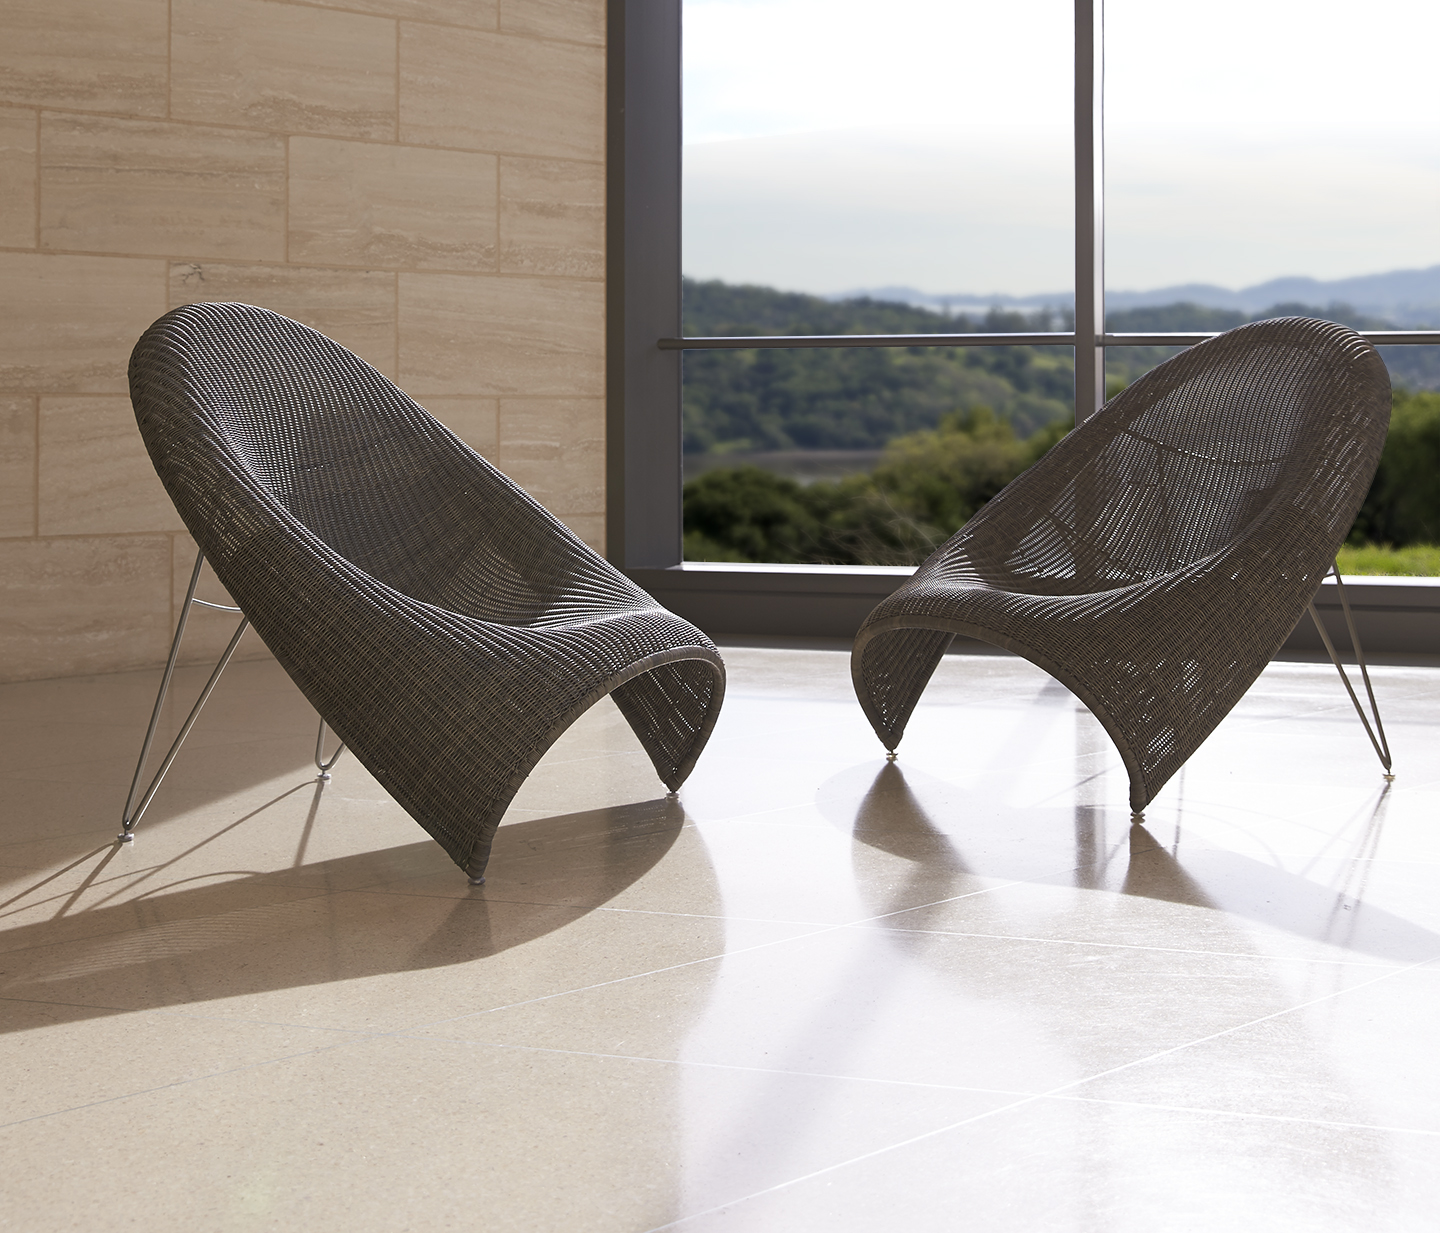 Poltrona frau group and haworth acquire janus et cie for Janus et cie